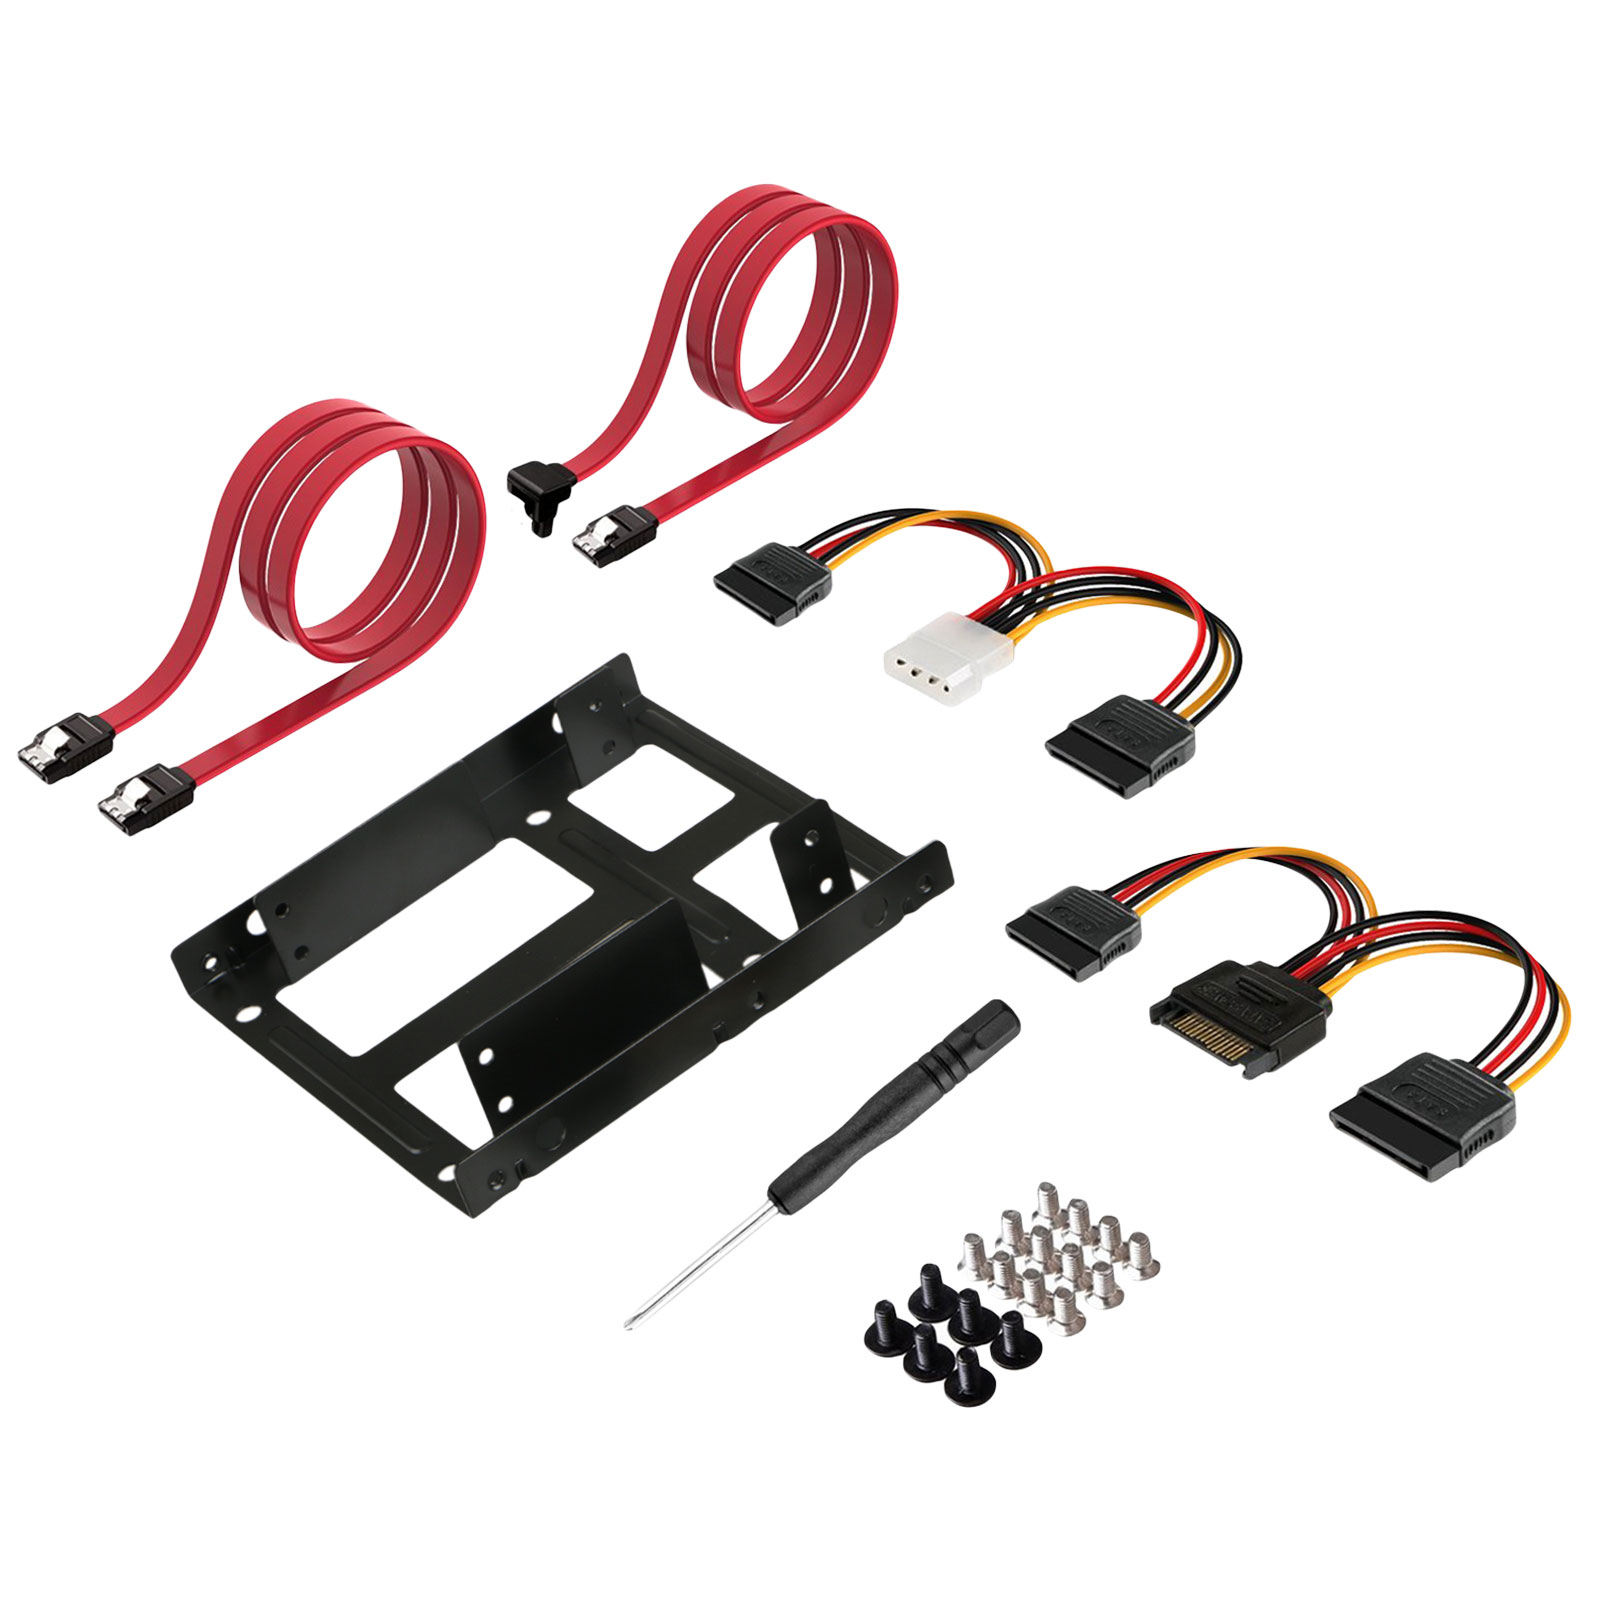 "EEEKit 2.5"" Hard Drives Dual SSD HDD to 3.5"" Mounting Bracket Kit Drive Bay Adapter with Internal Hard Disk Drive SATA Power Cables Compatible with SATA 3.0"